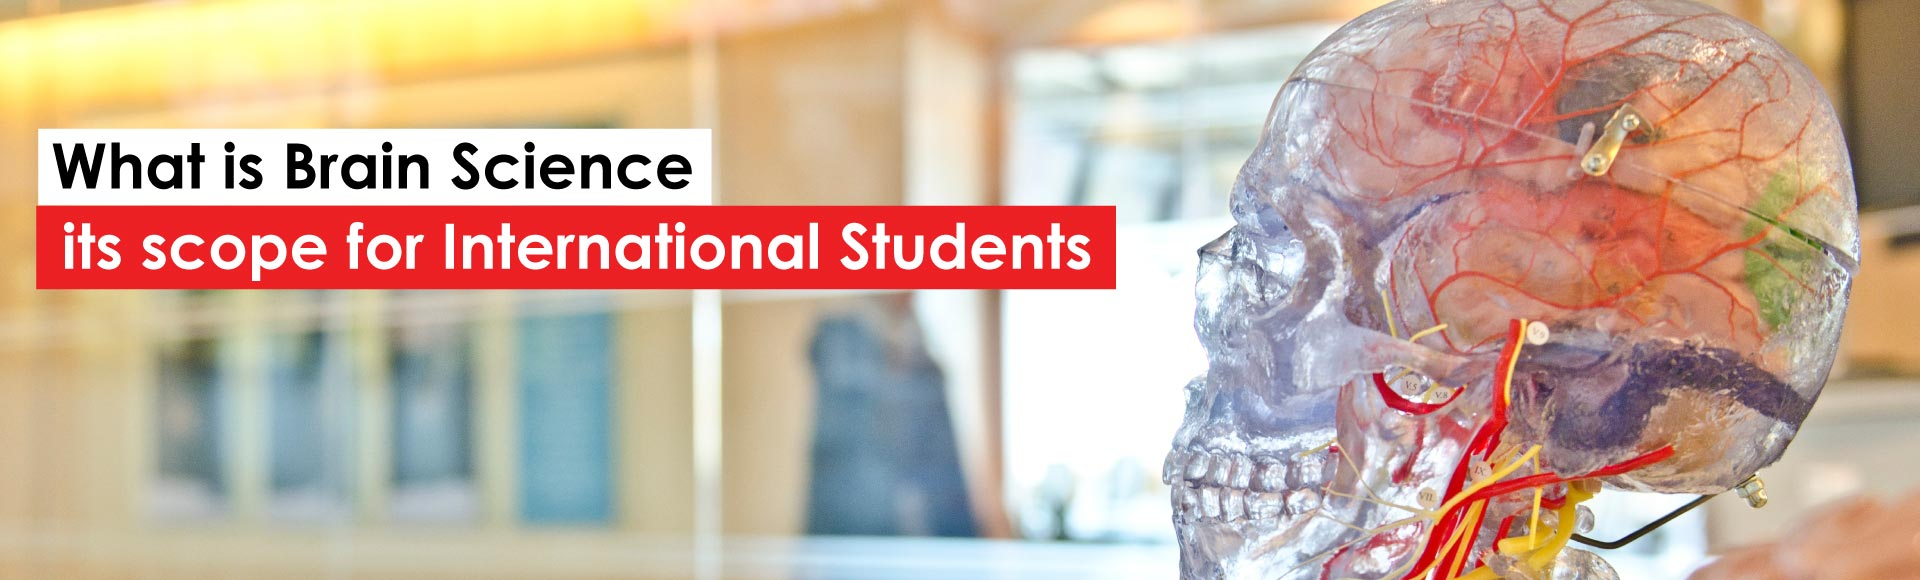 Role and Scope of Brain Science for International Students